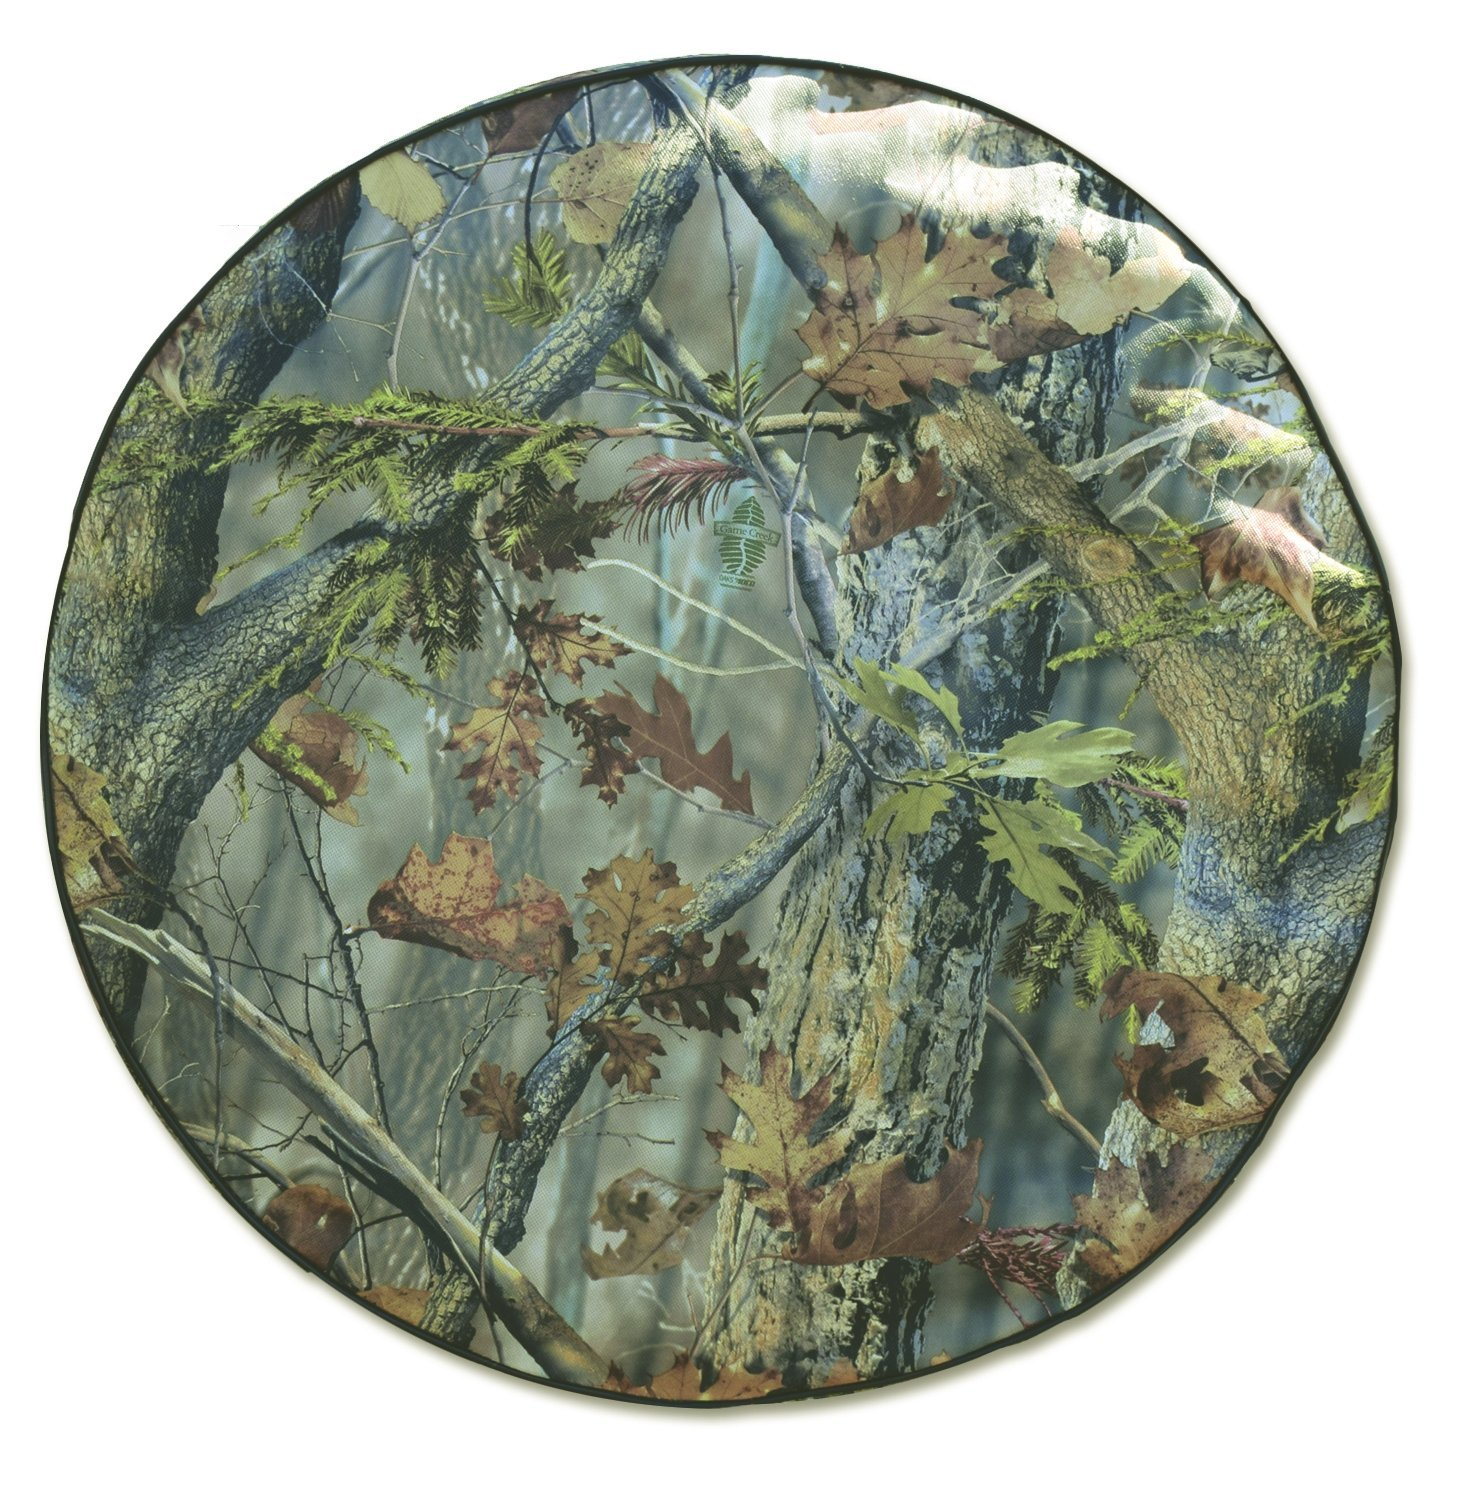 ADCO 8755 Camouflage Game Creek Oaks Spare Tire Cover F, (Fits 29 Diameter Wheel) by ADCO